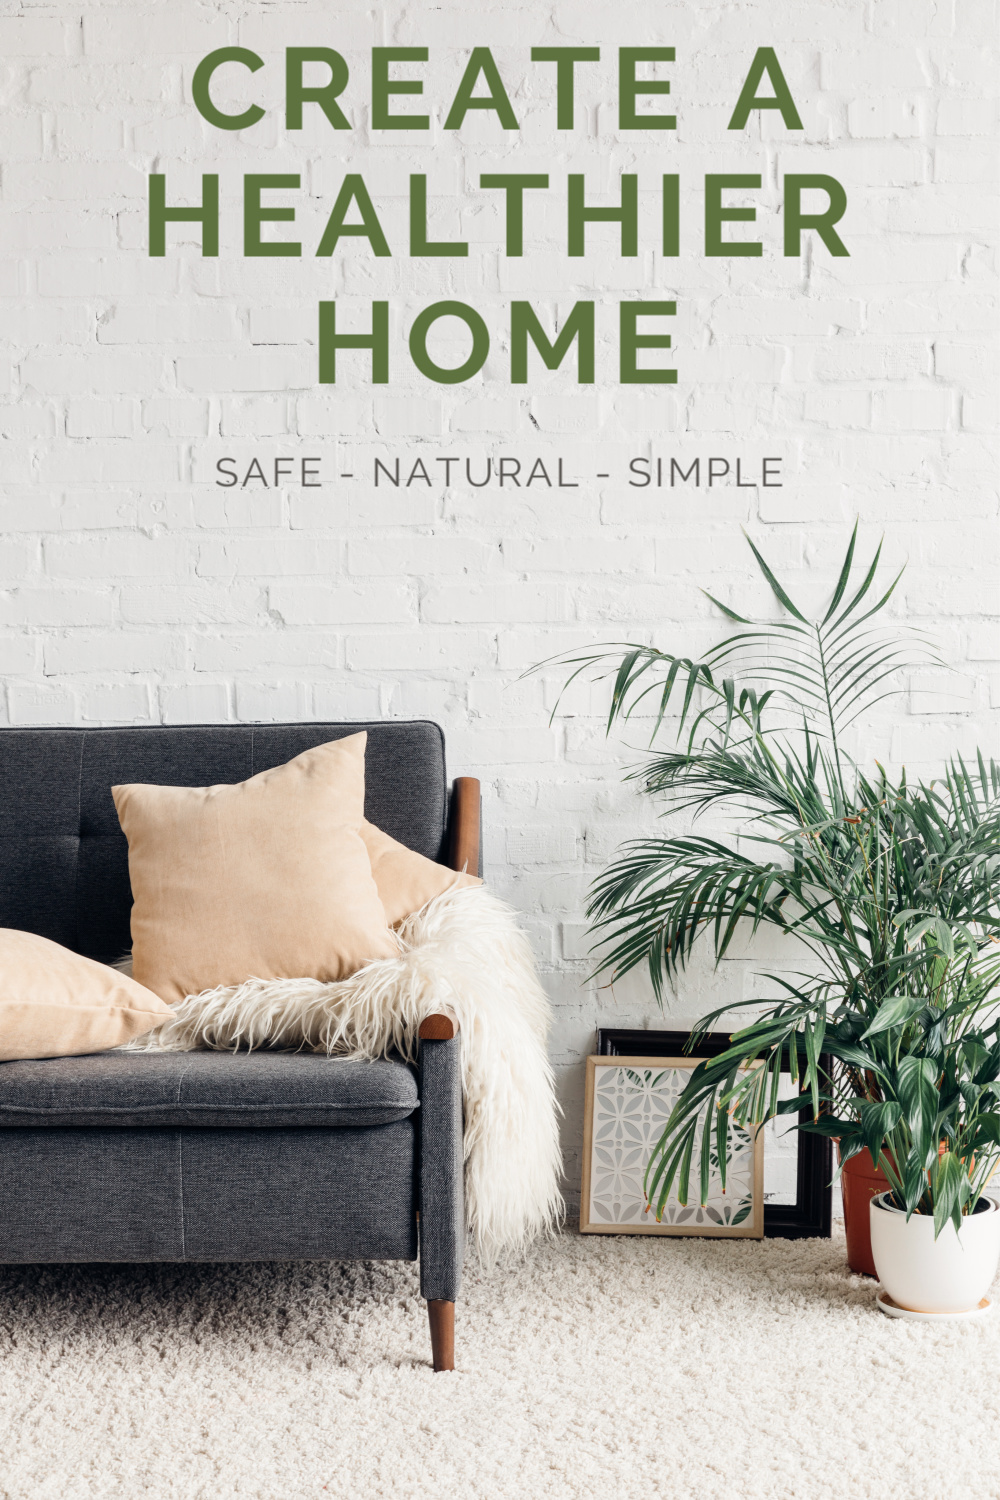 grey sofa with blankets and pillow and plants